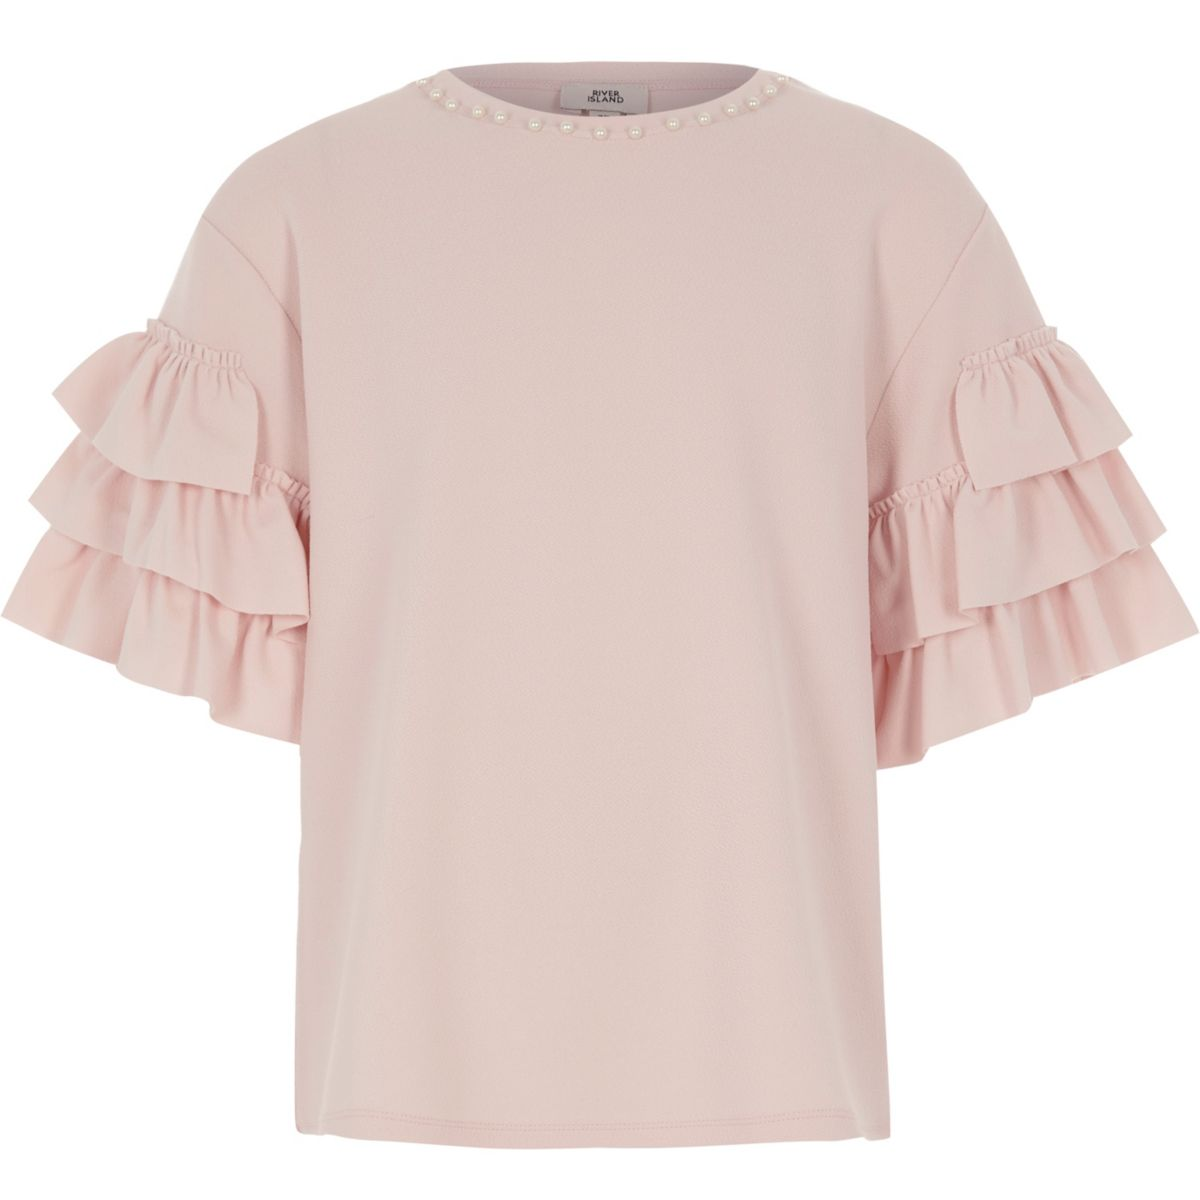 Girls Pink Pearl Tiered Frill Sleeve T Shirt by River Island